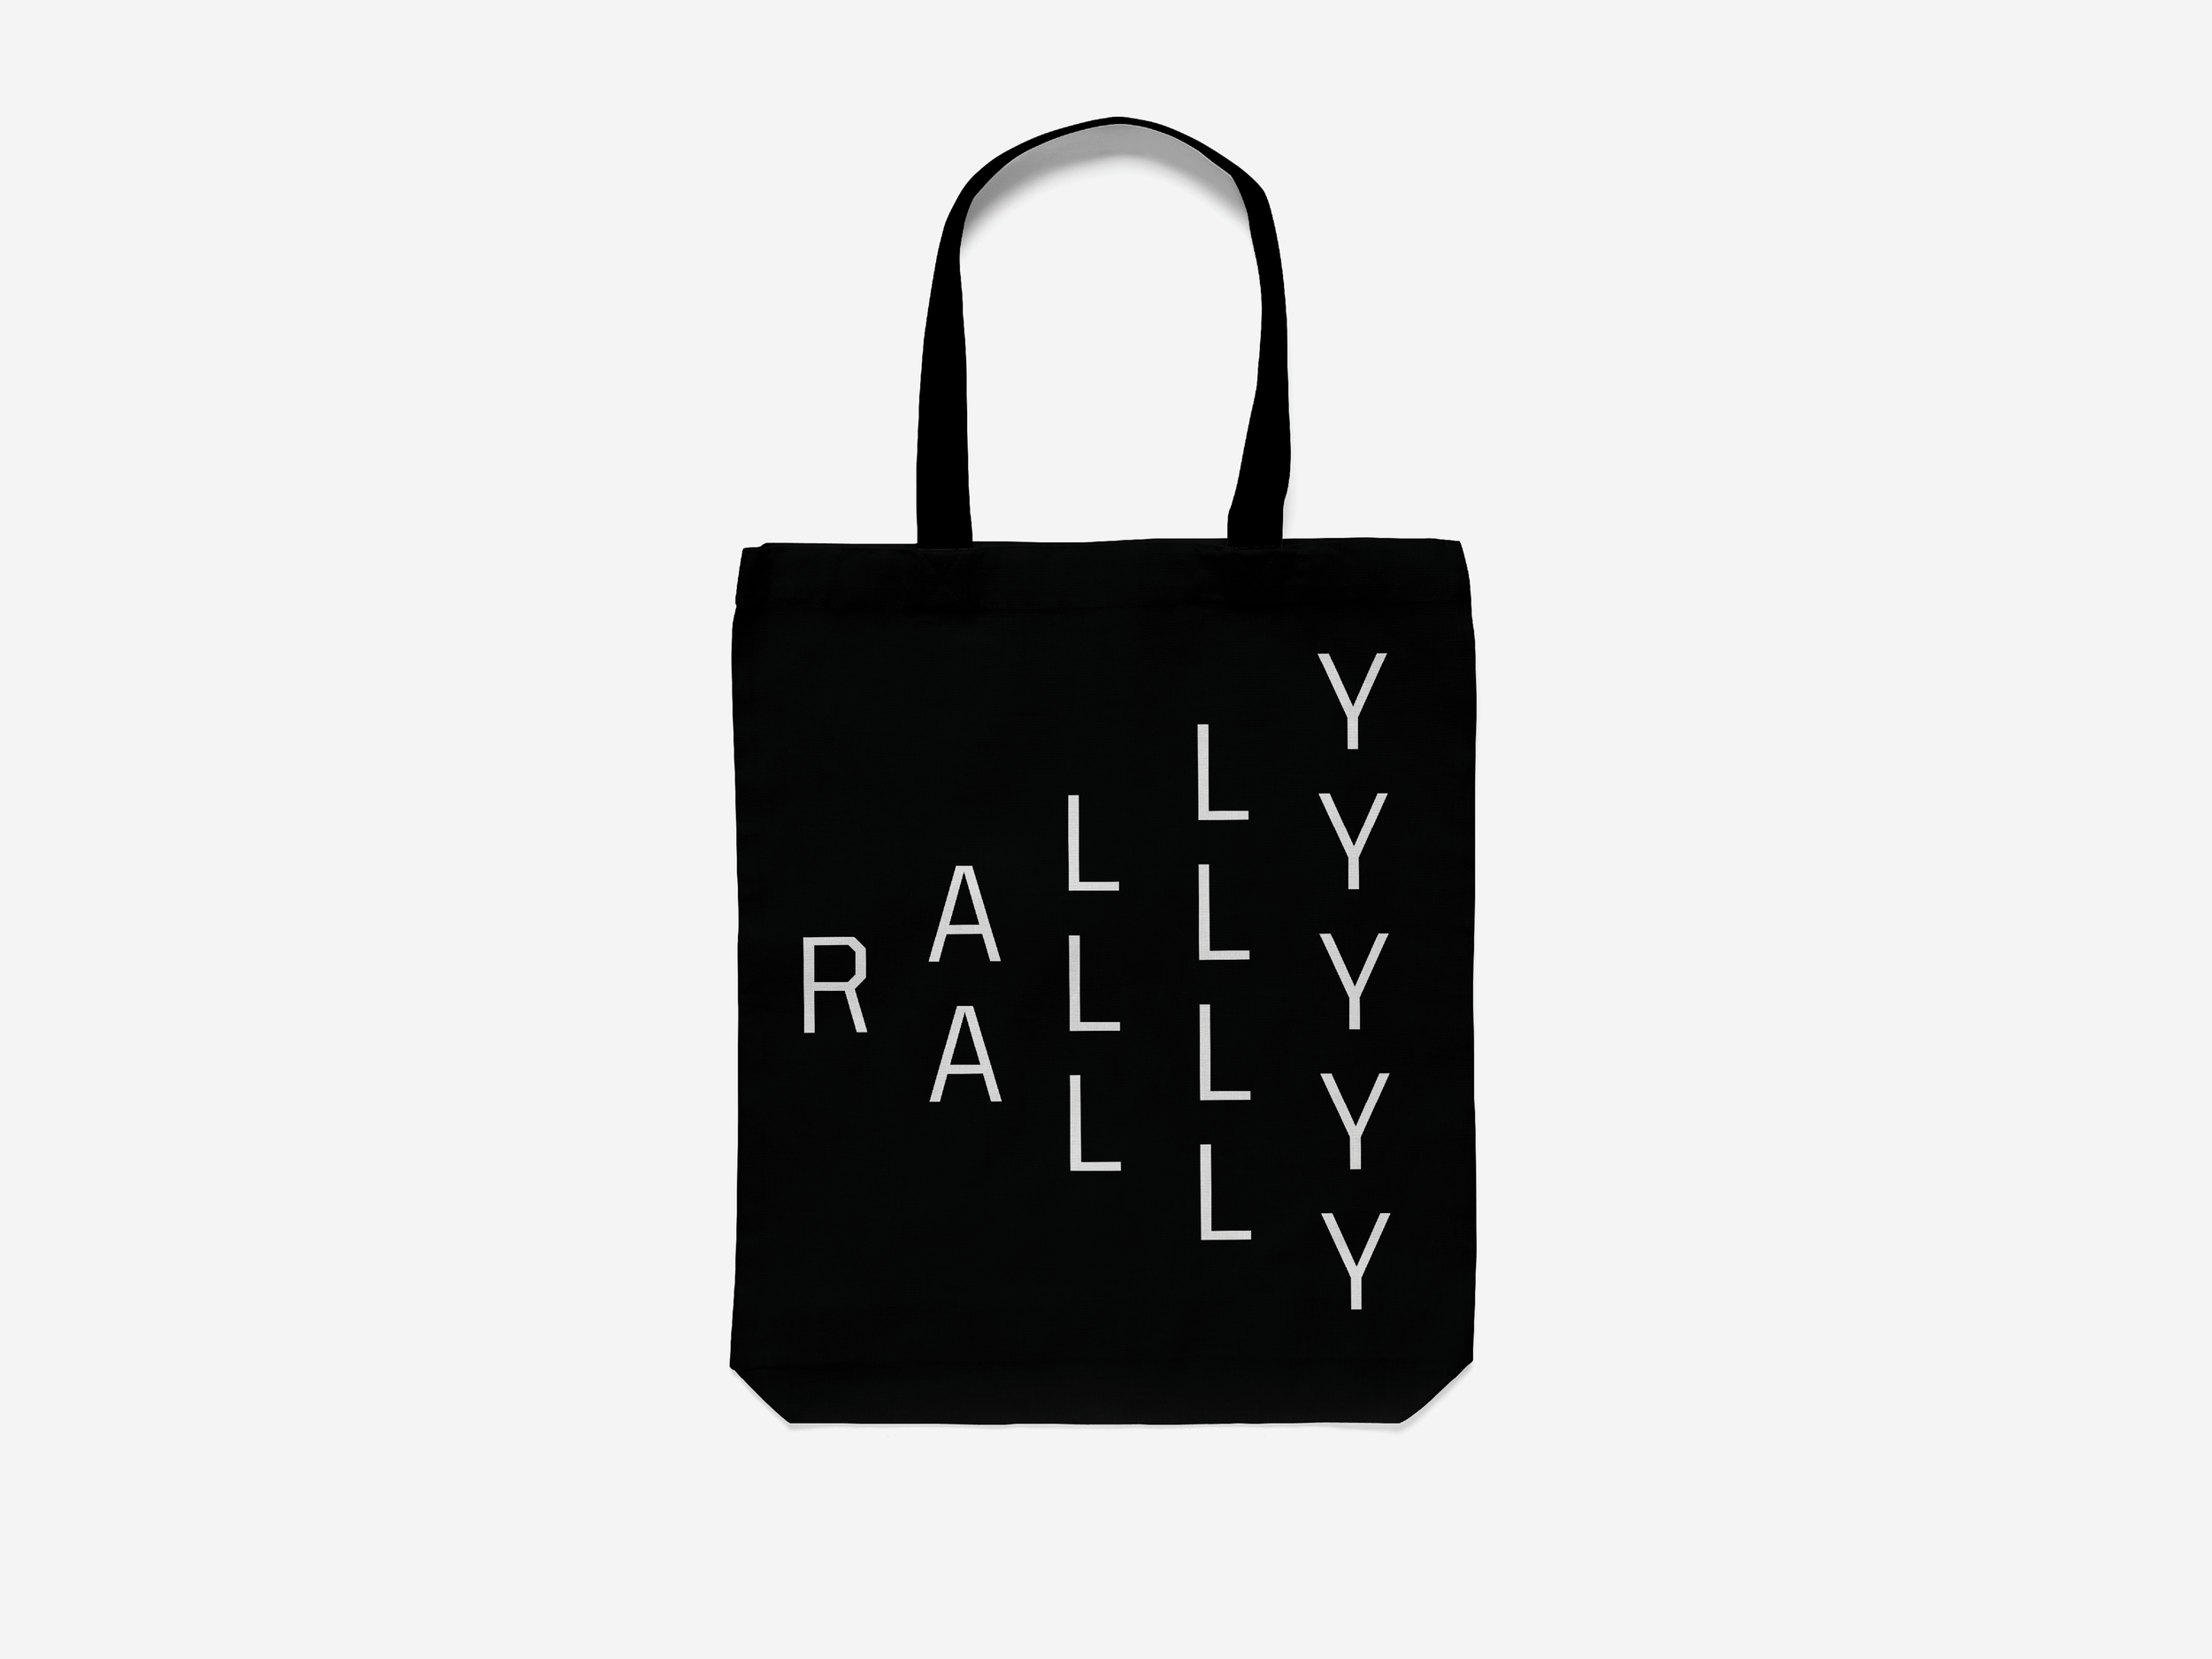 7 Rally branded bag.png